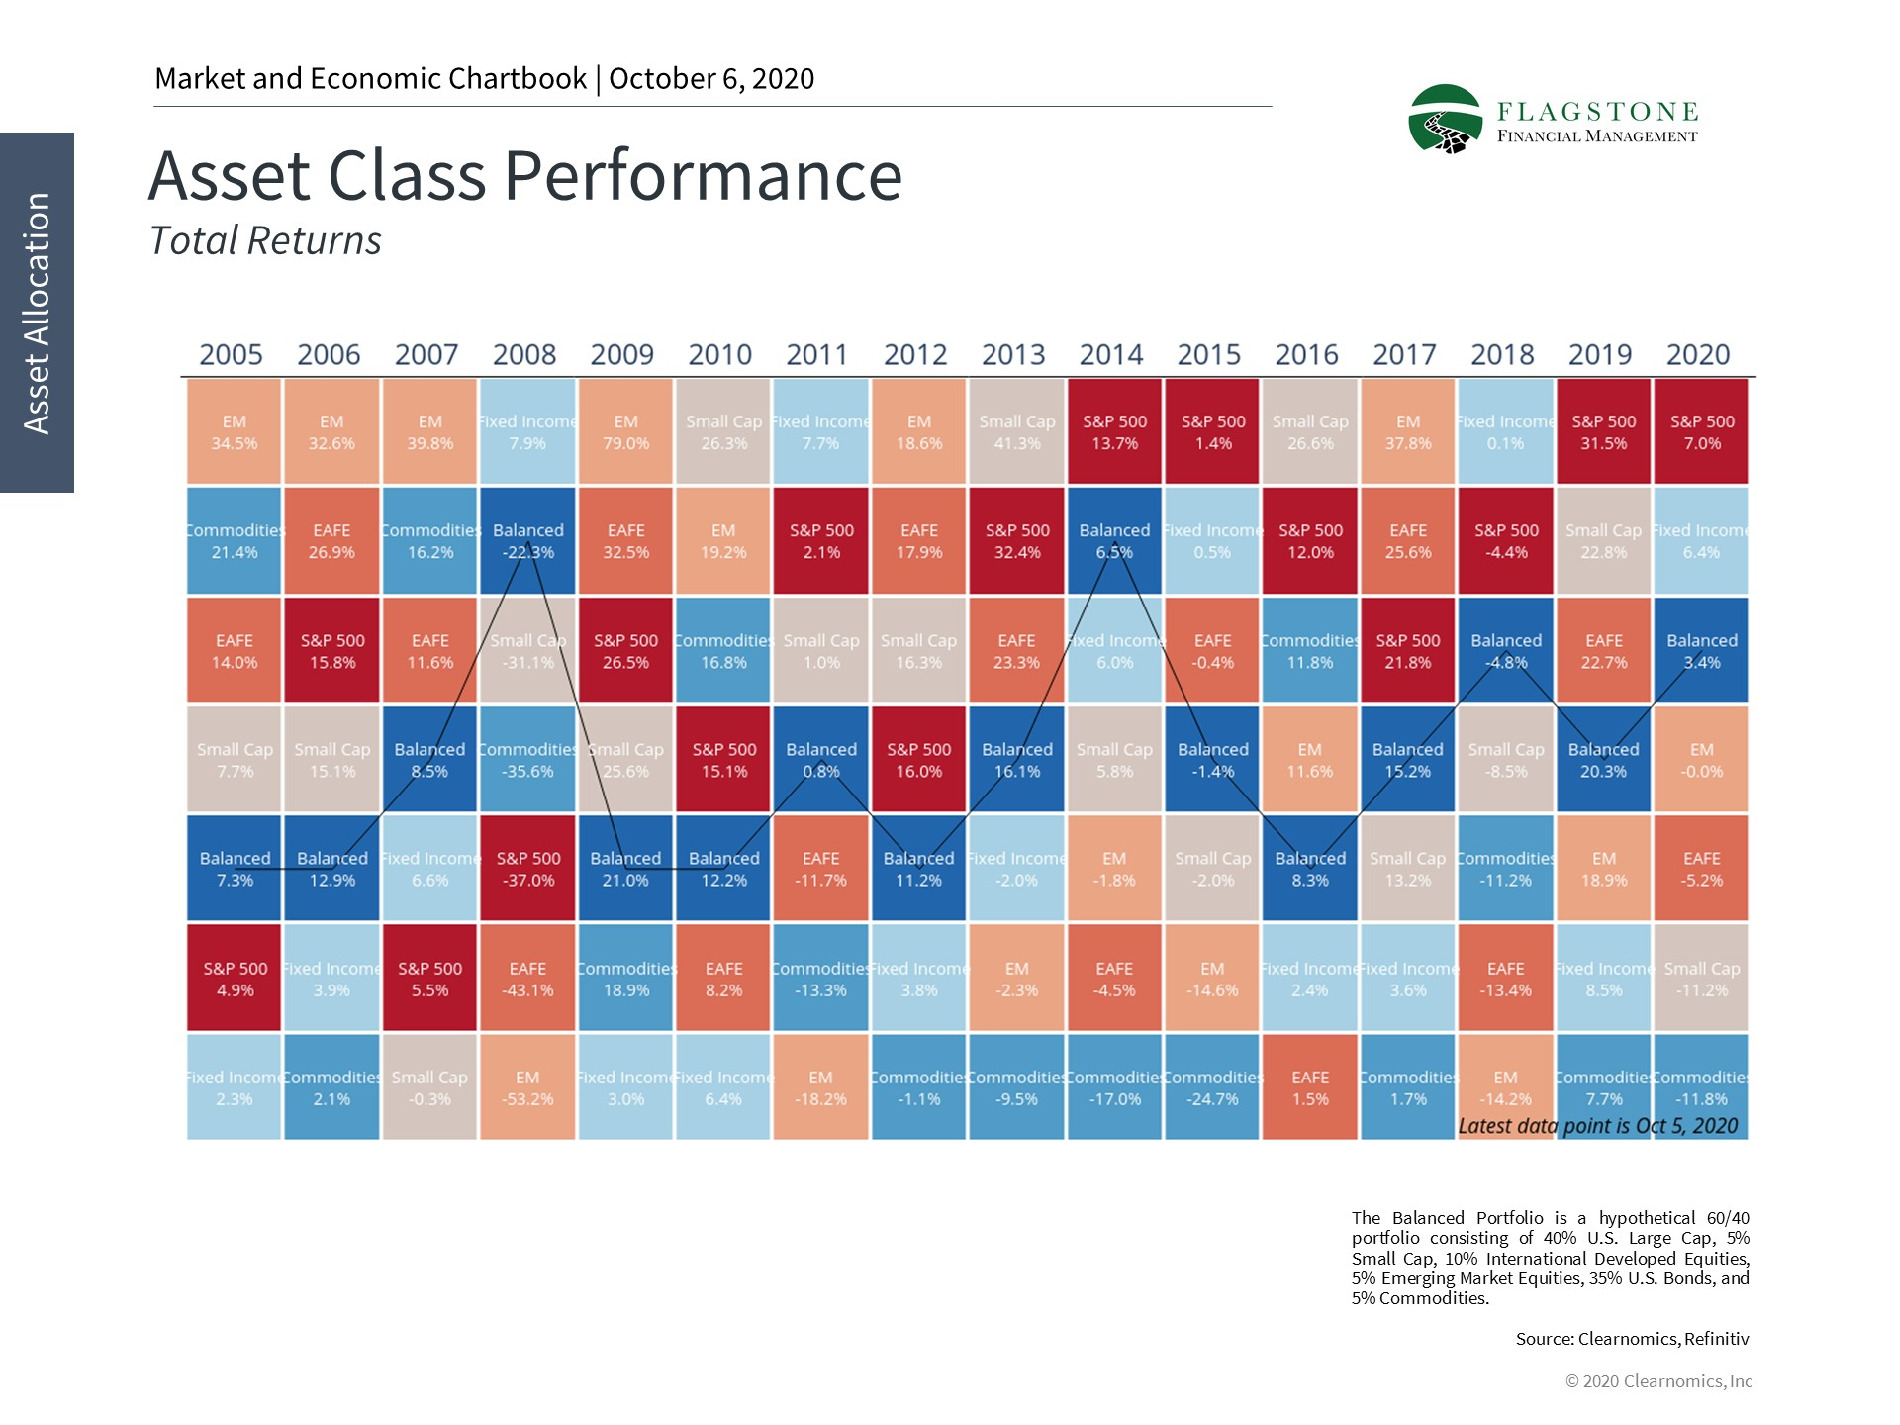 Chart showing asset class performance